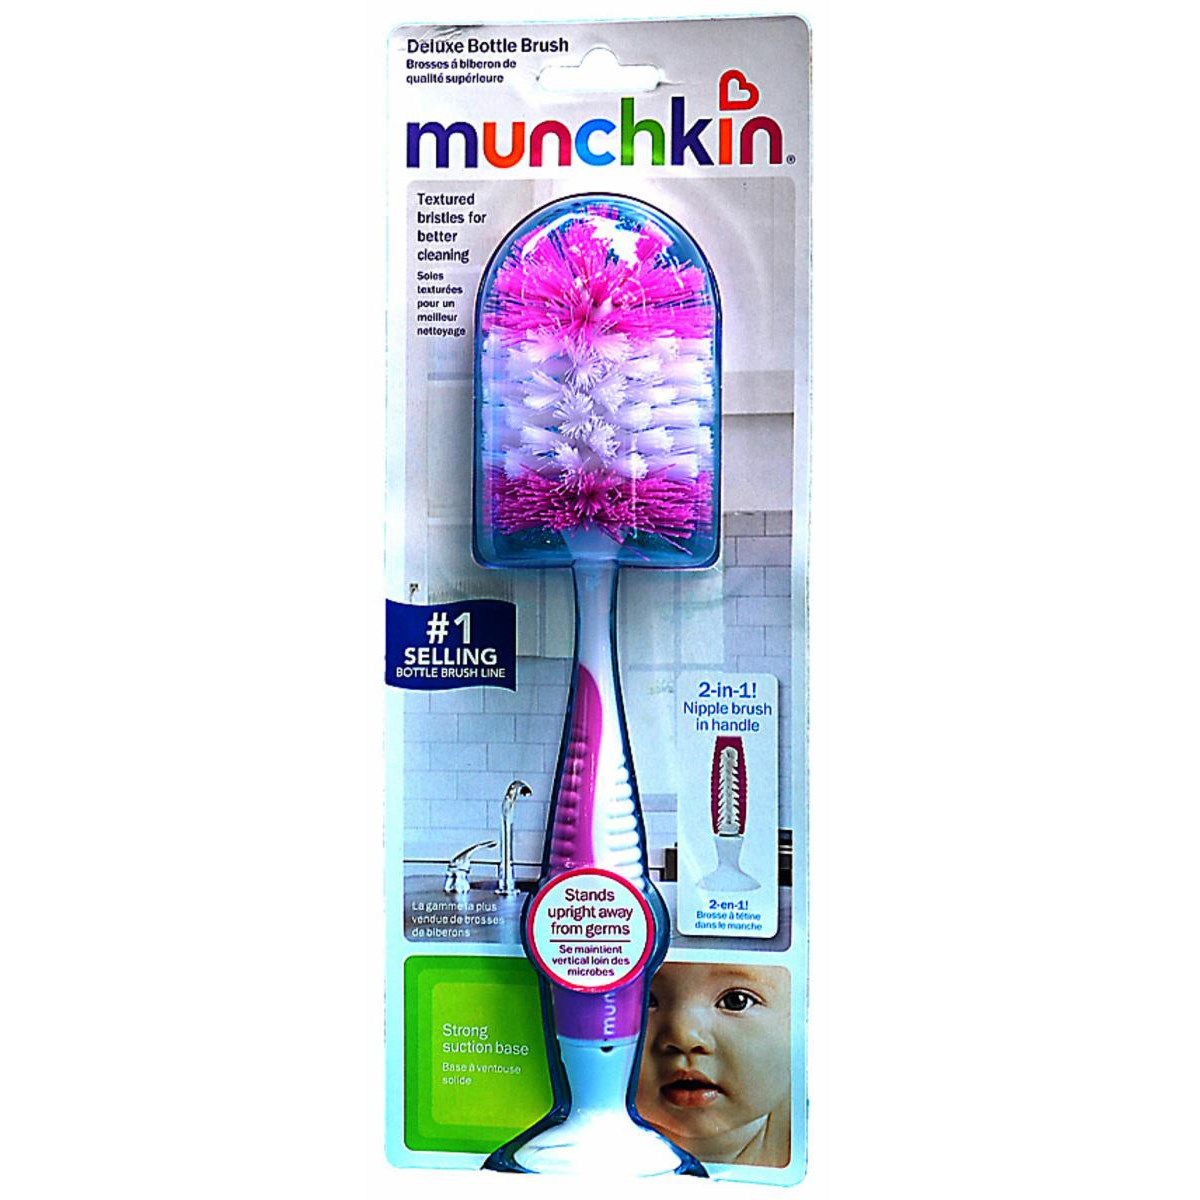 Choi co binh deluxe Deluxe Bottle Brush - Munchkin - 11601